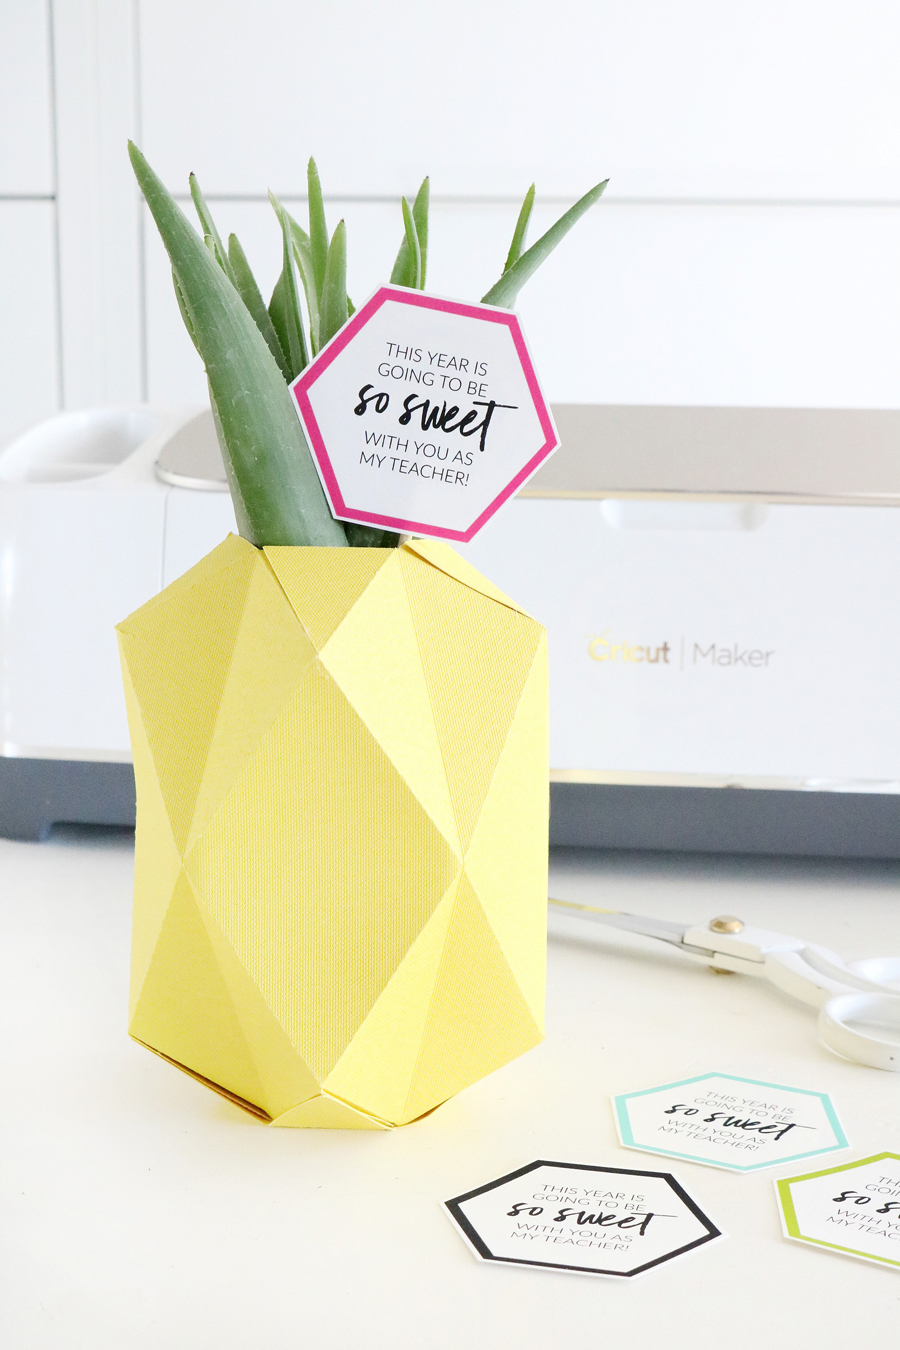 Paper Pineapple Vase made with the Cricut Maker and Single Scoring Wheel